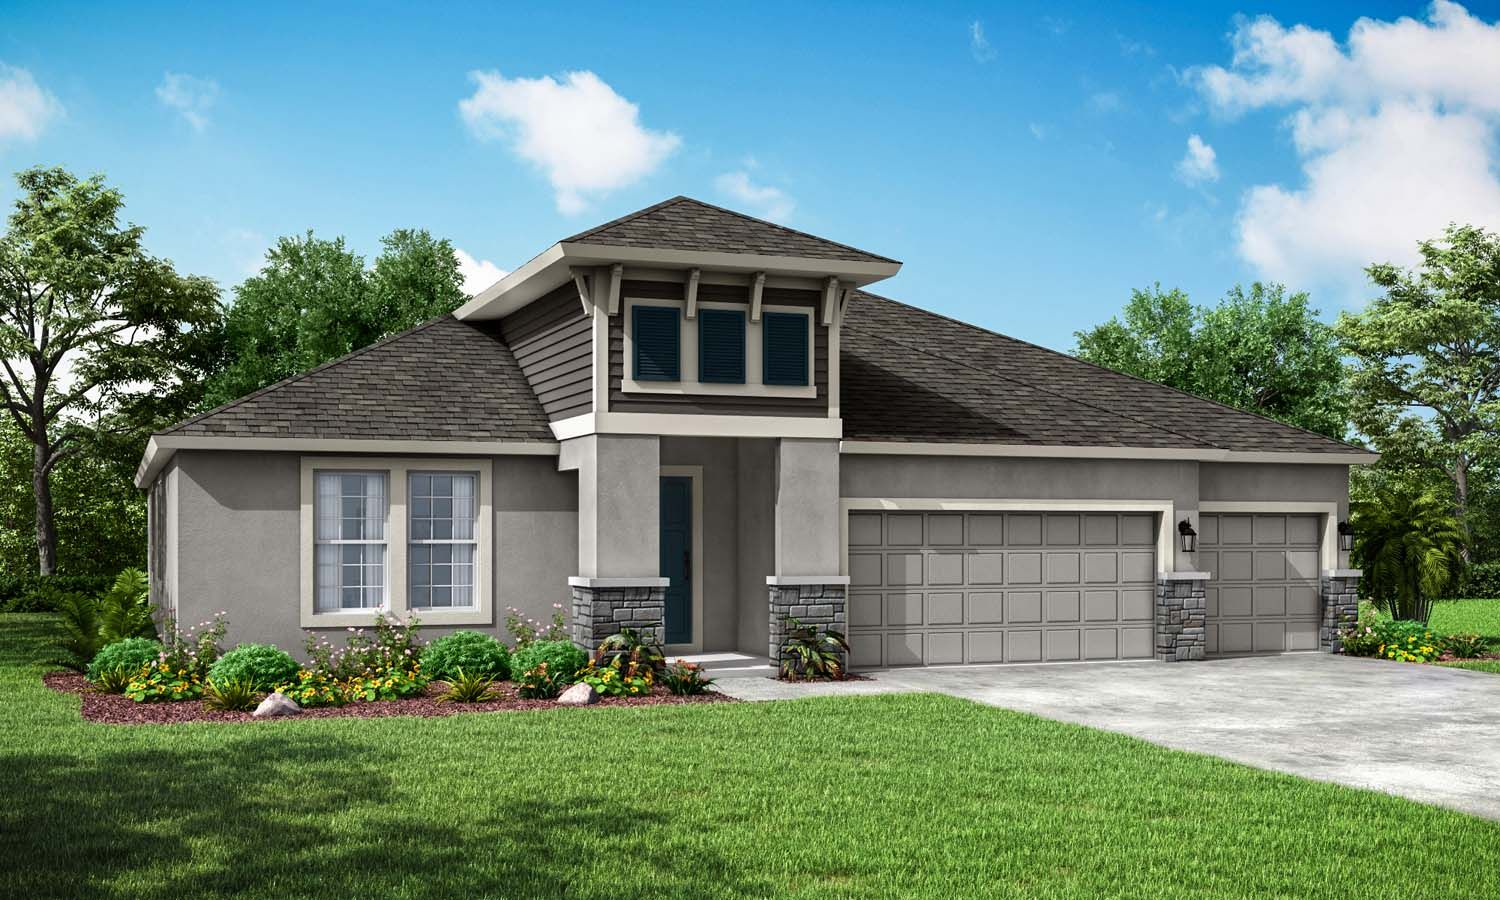 Sapphire new home exterior elevation costal with stone William Ryan Homes Tampa:Sapphire New Home - Exterior Elevation - Coastal with Stone